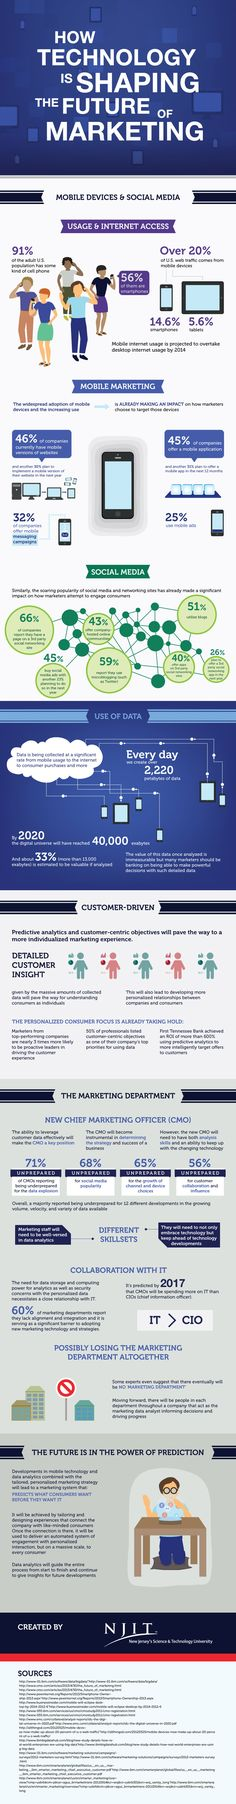 Hire a Data Geek! #infographic